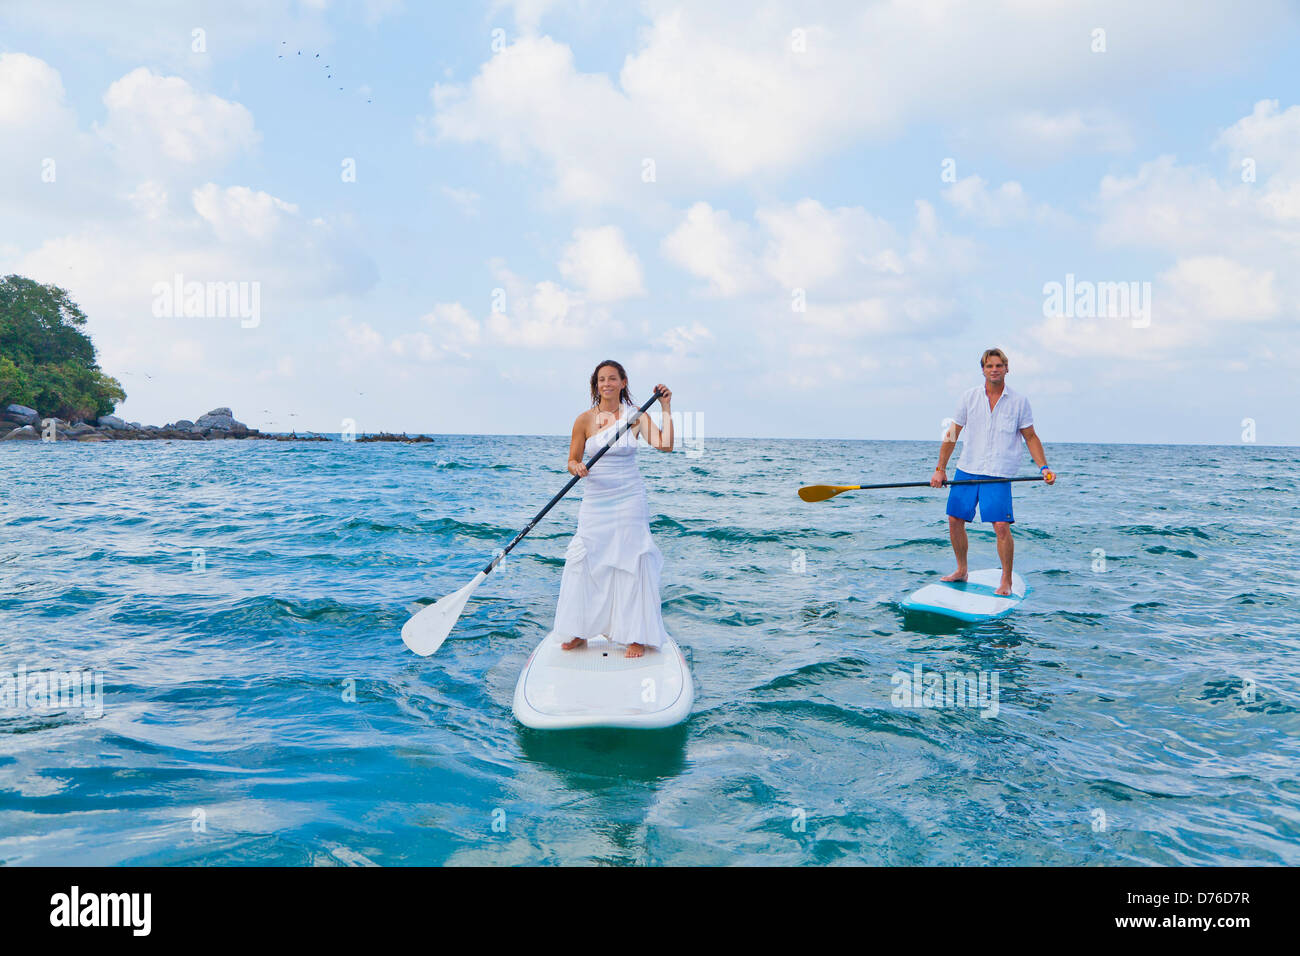 Dressed up man and woman riding paddle boards Stock Photo